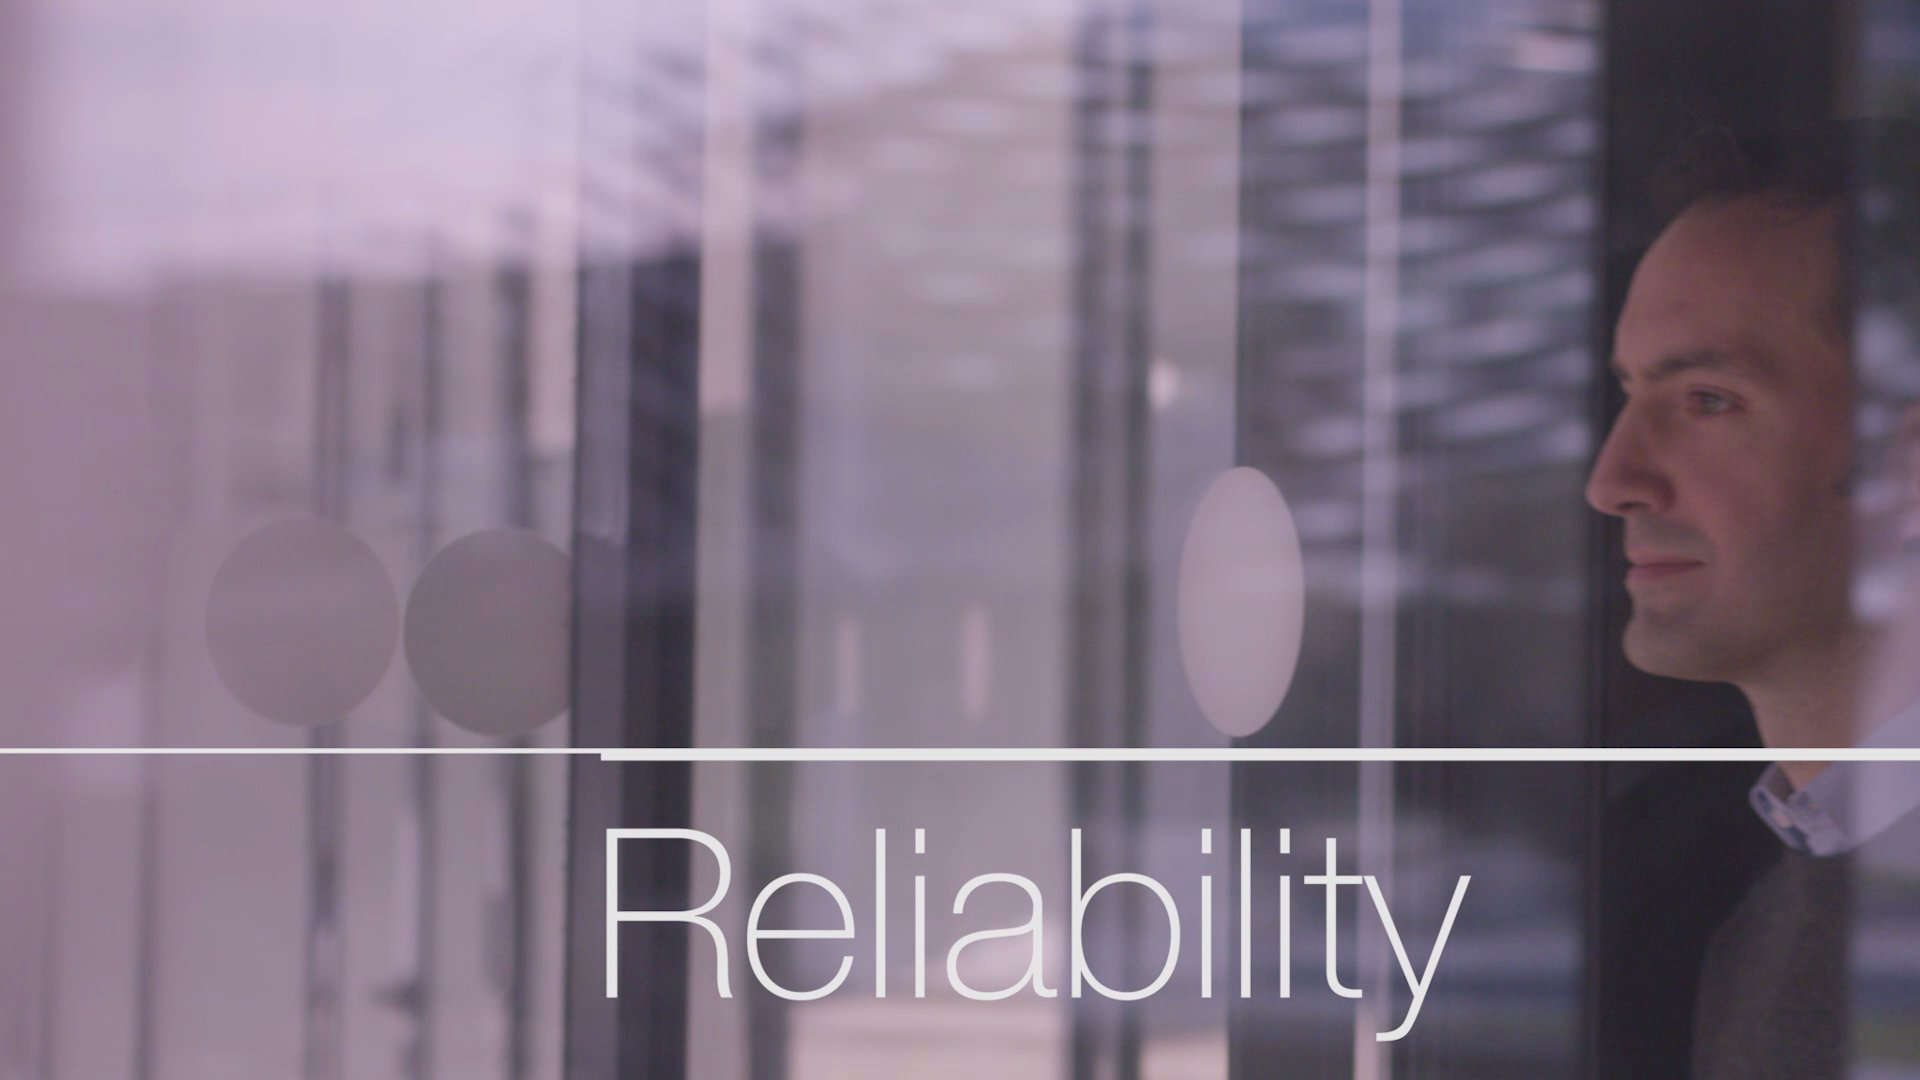 Values - Reliability